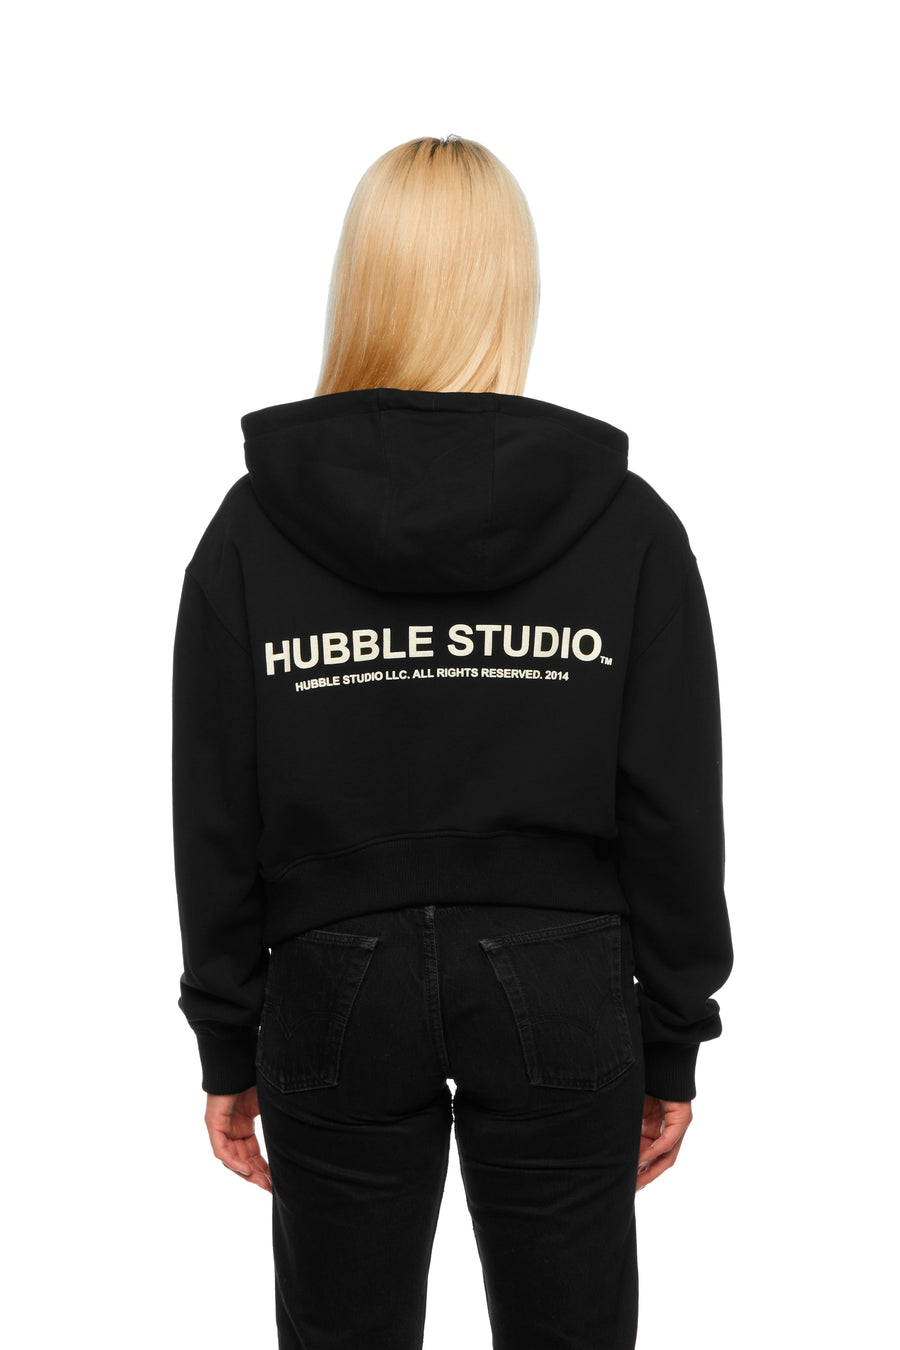 Camera Shy Femme Cropped Hoodie